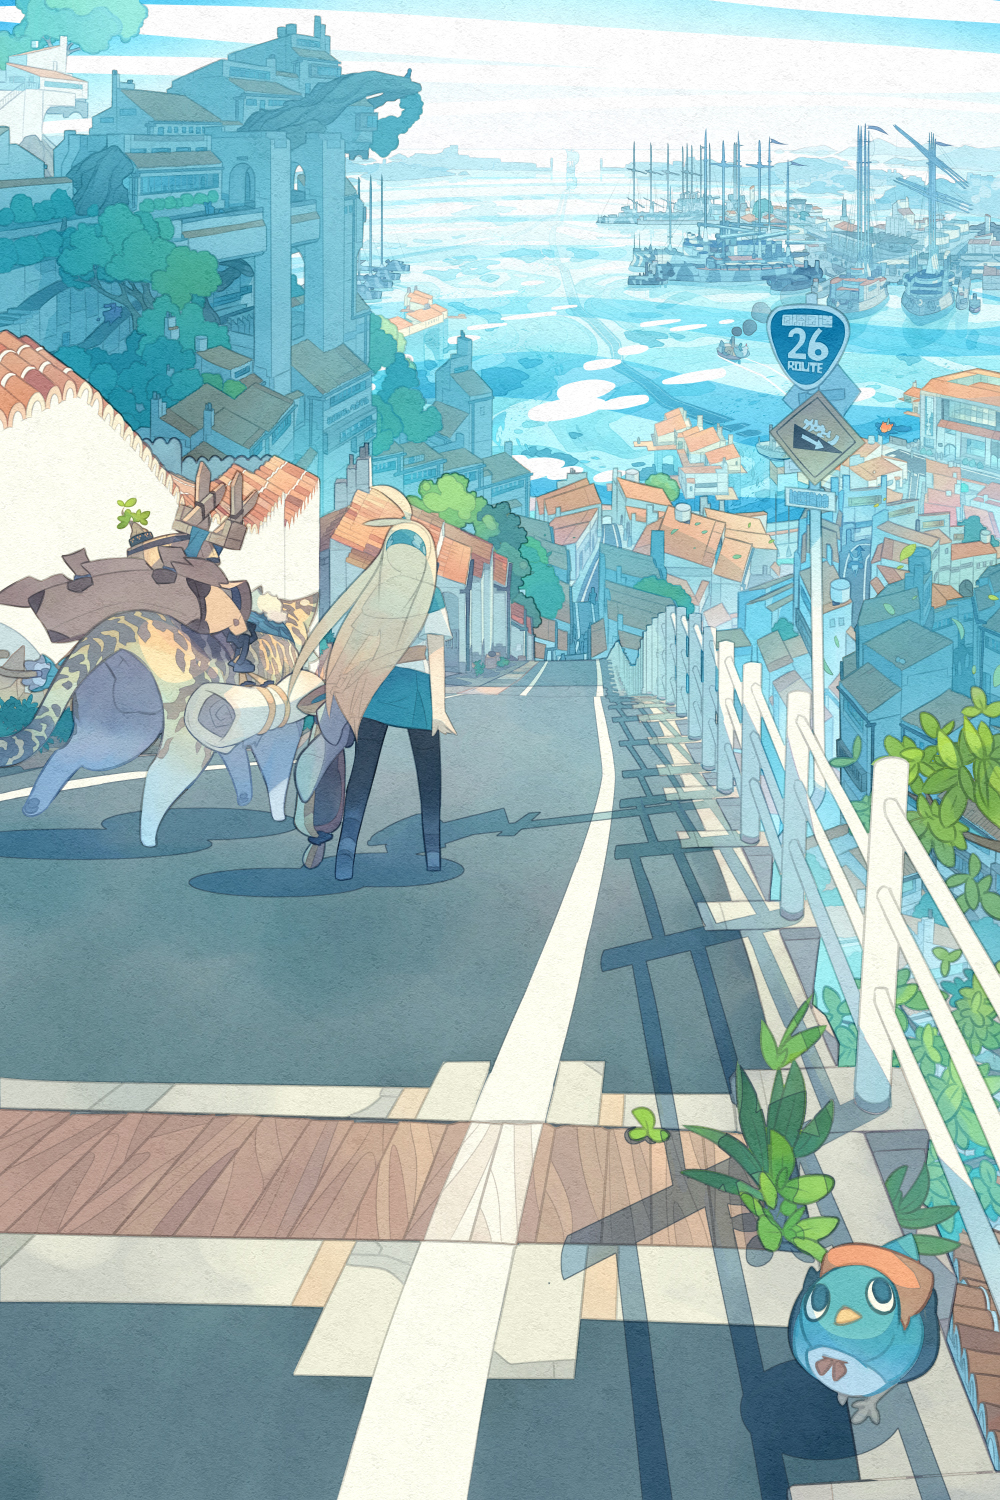 1girl ahoge akitsu_taira animal arms_at_sides bag barrel belt bird black_legwear blonde_hair blue_skirt blue_sky bow bowtie building bush cityscape clouds cloudy_sky commentary_request day facing_away fantasy fence flood green_skirt hairband highres horizon house izumi_luna_(akitsu_taira) leopard long_hair looking_up ocean original outdoors overgrown pantyhose plant red_bow red_bowtie road road_sign scenery see-through shadow ship shirt short_sleeves sign skirt sky smoke topknot tree vanishing_point very_long_hair walking wall water watercraft white_shirt window